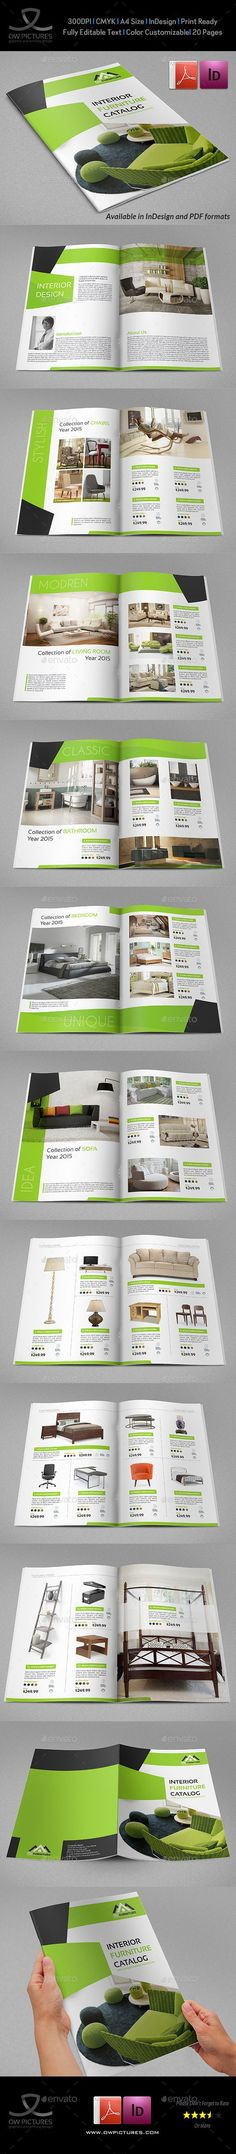 Products Catalogs Brochure - 20 Pages: